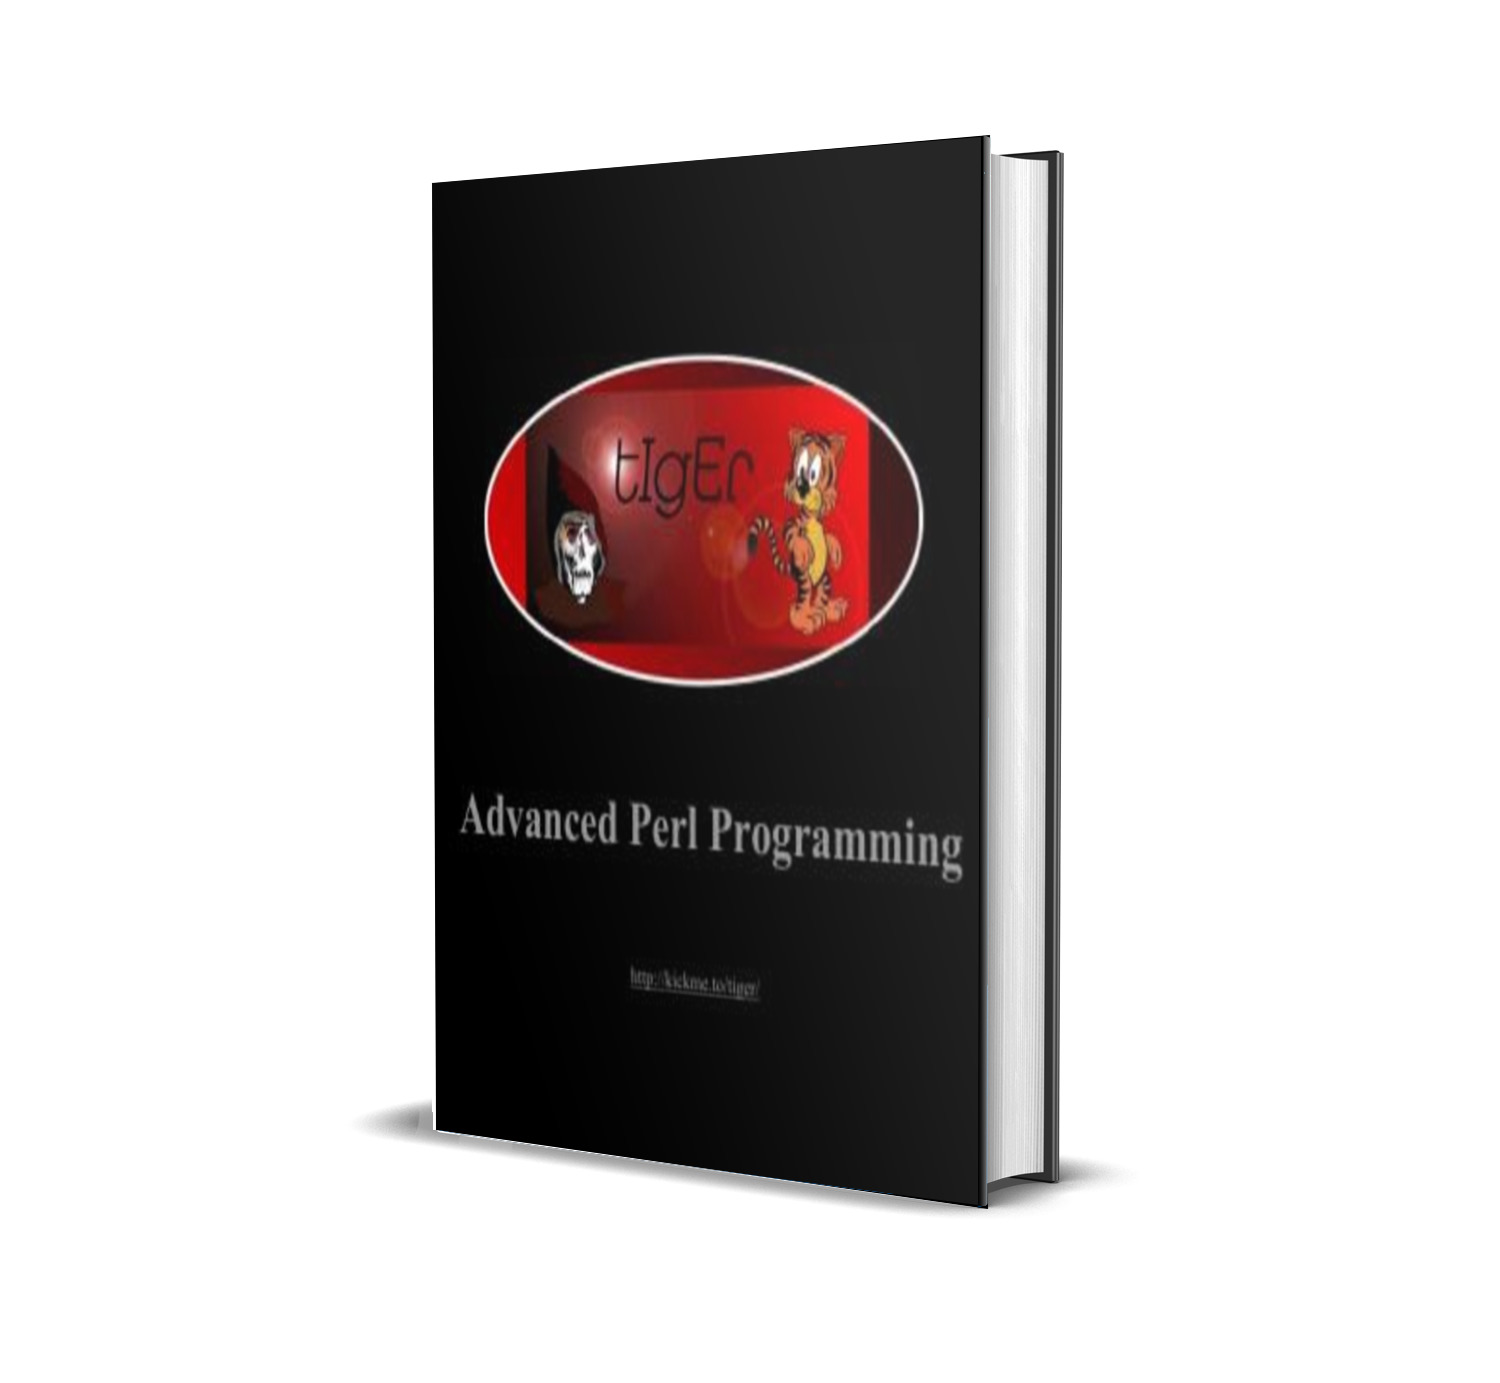 Advanced Perl Programming - ripped by tIgEr